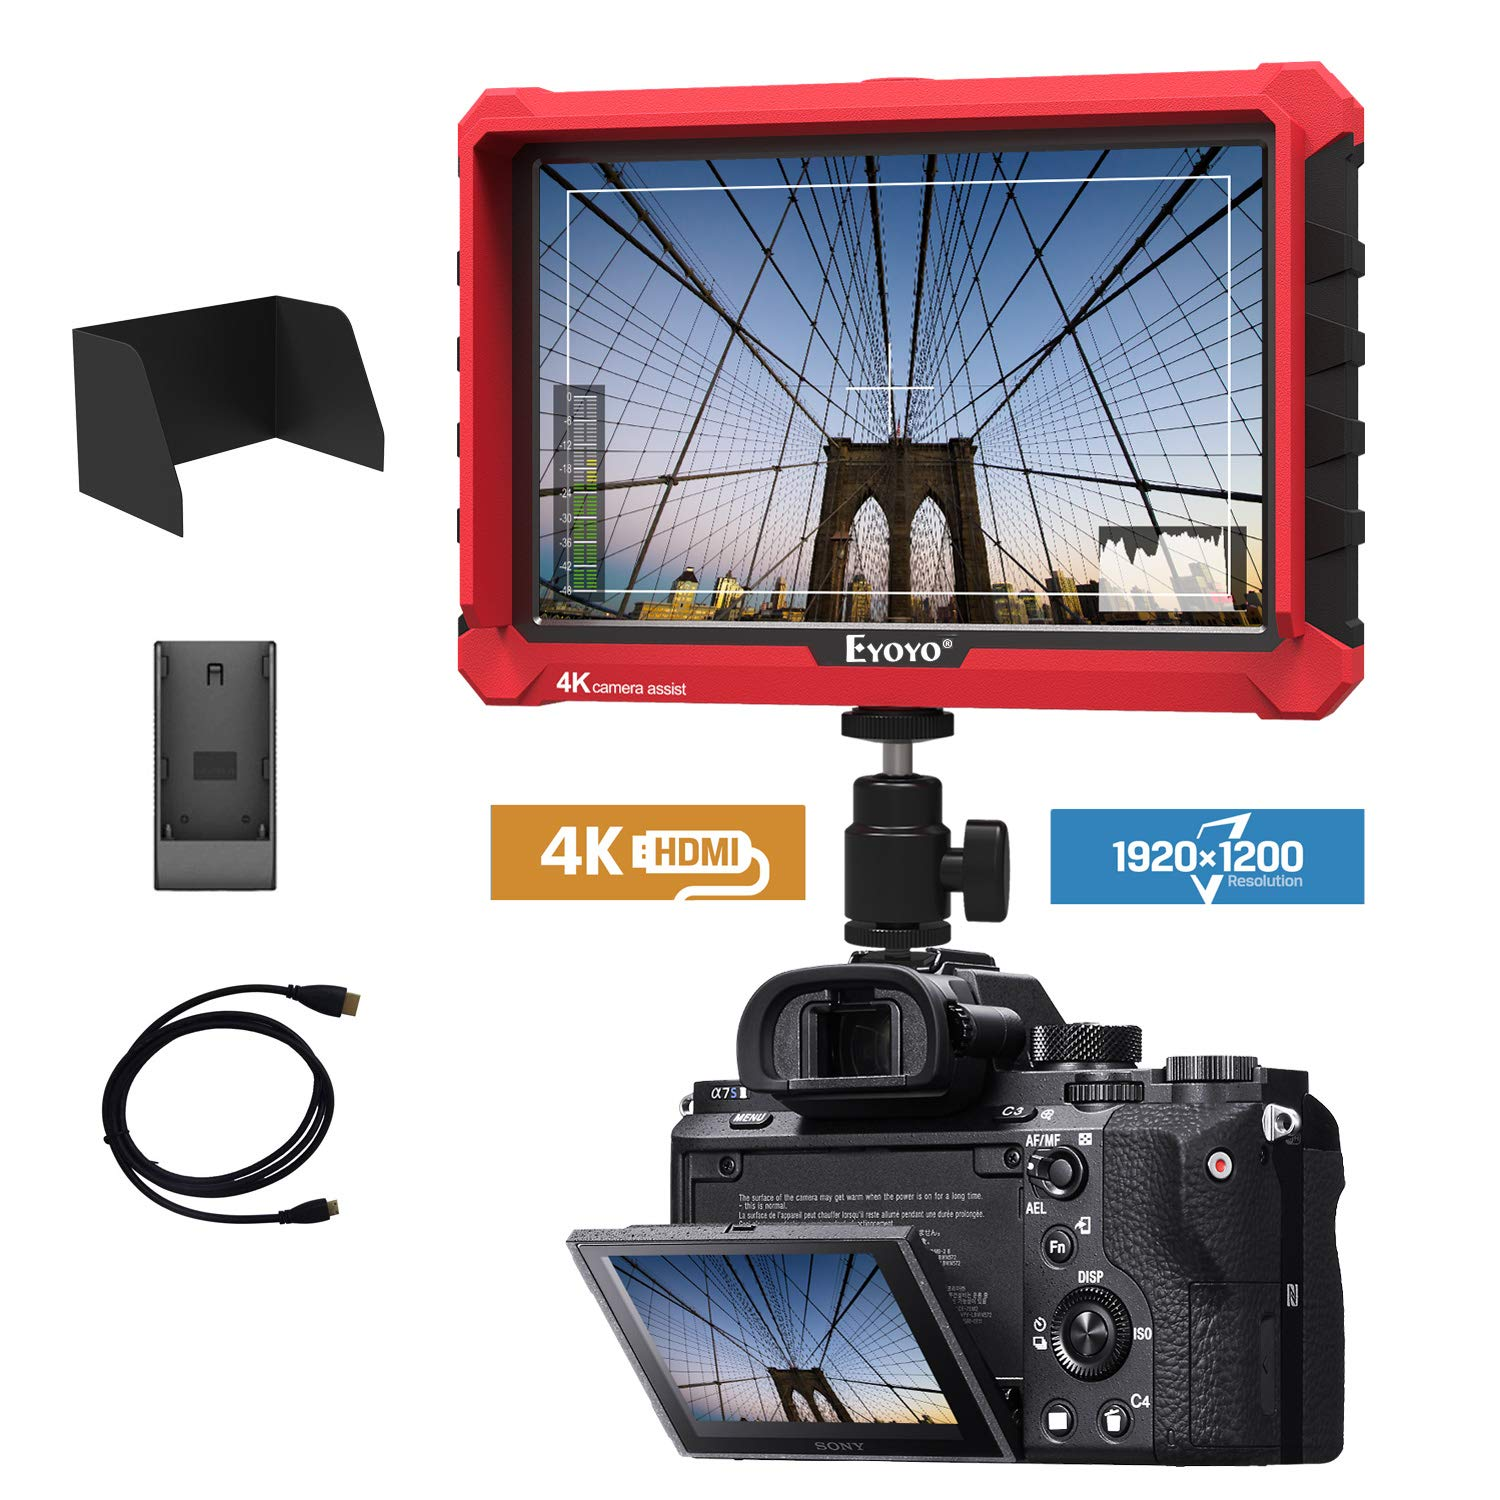 A7S 7 Inch On Camera Field DSLR Monitor 1920x1200 IPS Supports 4K HDMI Input Loop Output Camera-top Screen Compatible DSLR Mirrorless Camera Sony A7S II A6500 Panasonic GH5 Canon 5D Mark IV DJI Ronin by Eyoyo